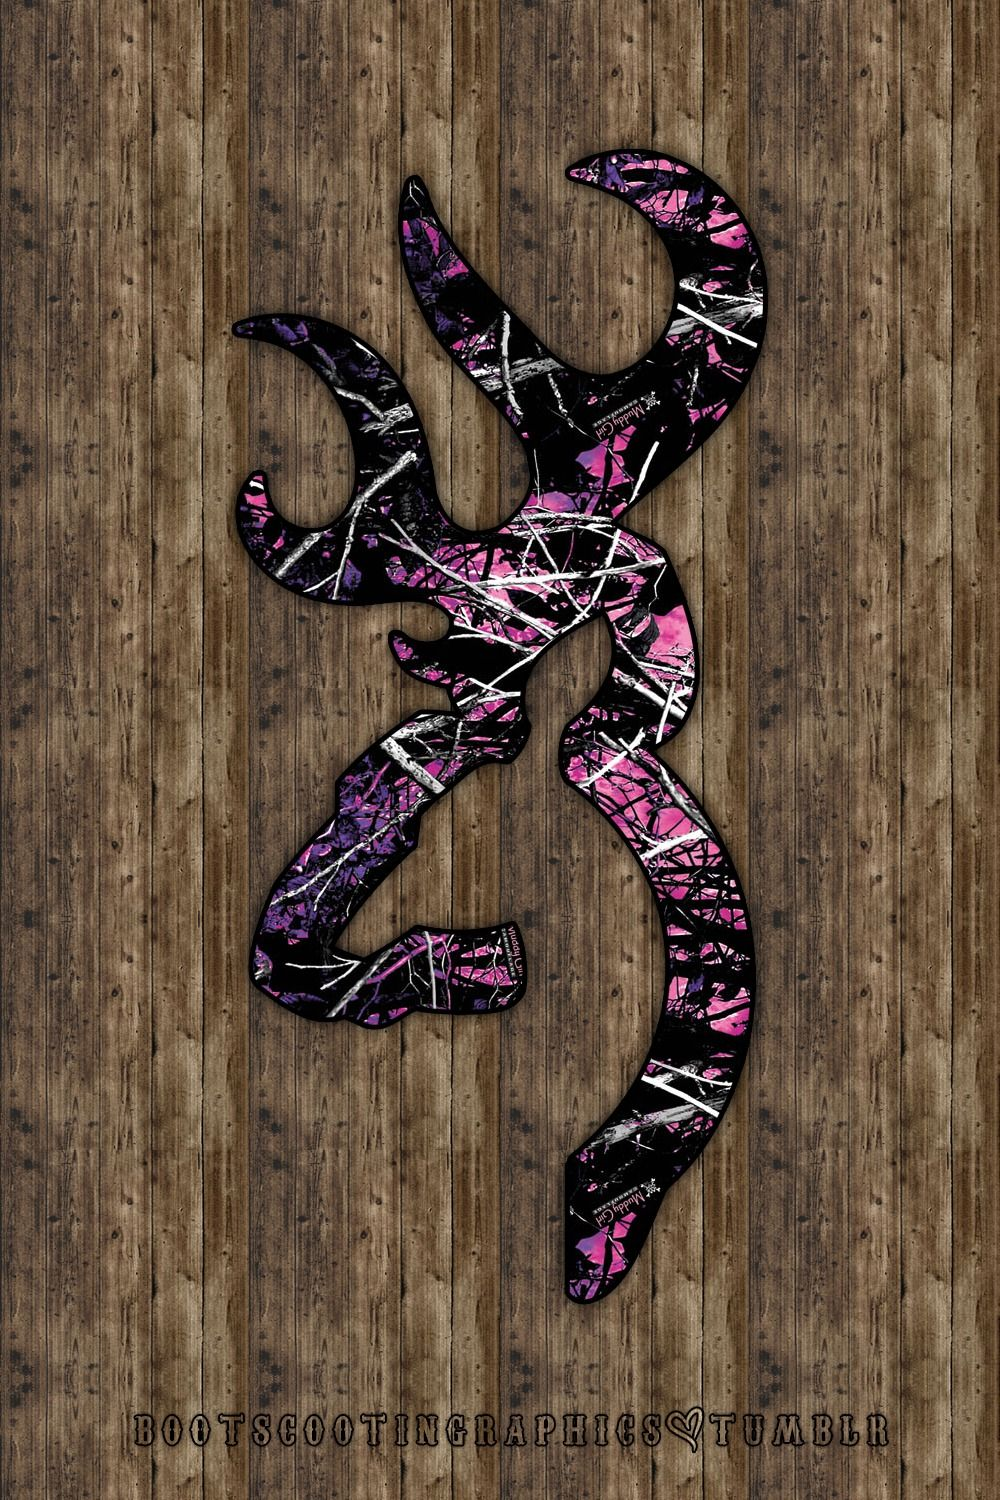 Boot Scootin Graphics Cell Phone Wallpaper Phone Wallpapers